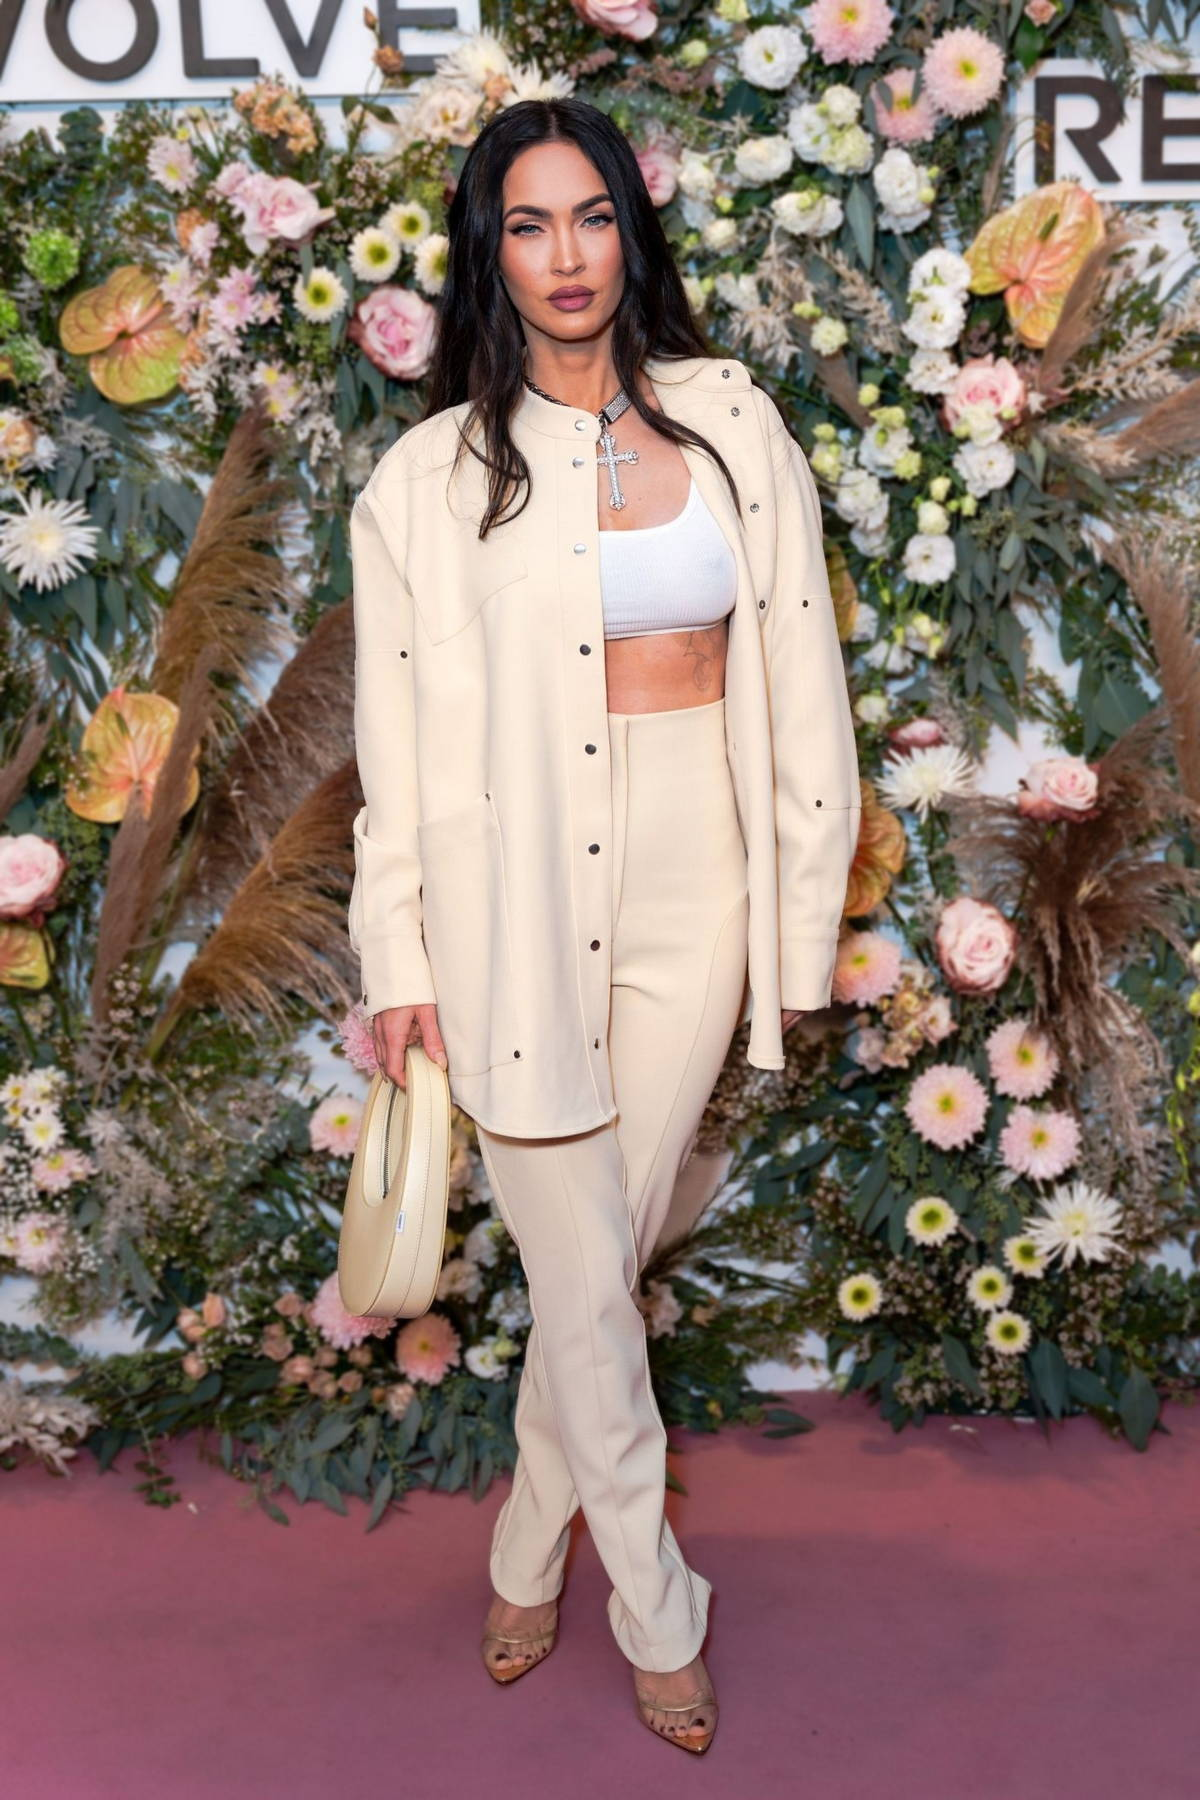 Megan Fox attends the Revolve Gallery inaugural event during New York Fashion Week at Hudson Yards in New York City